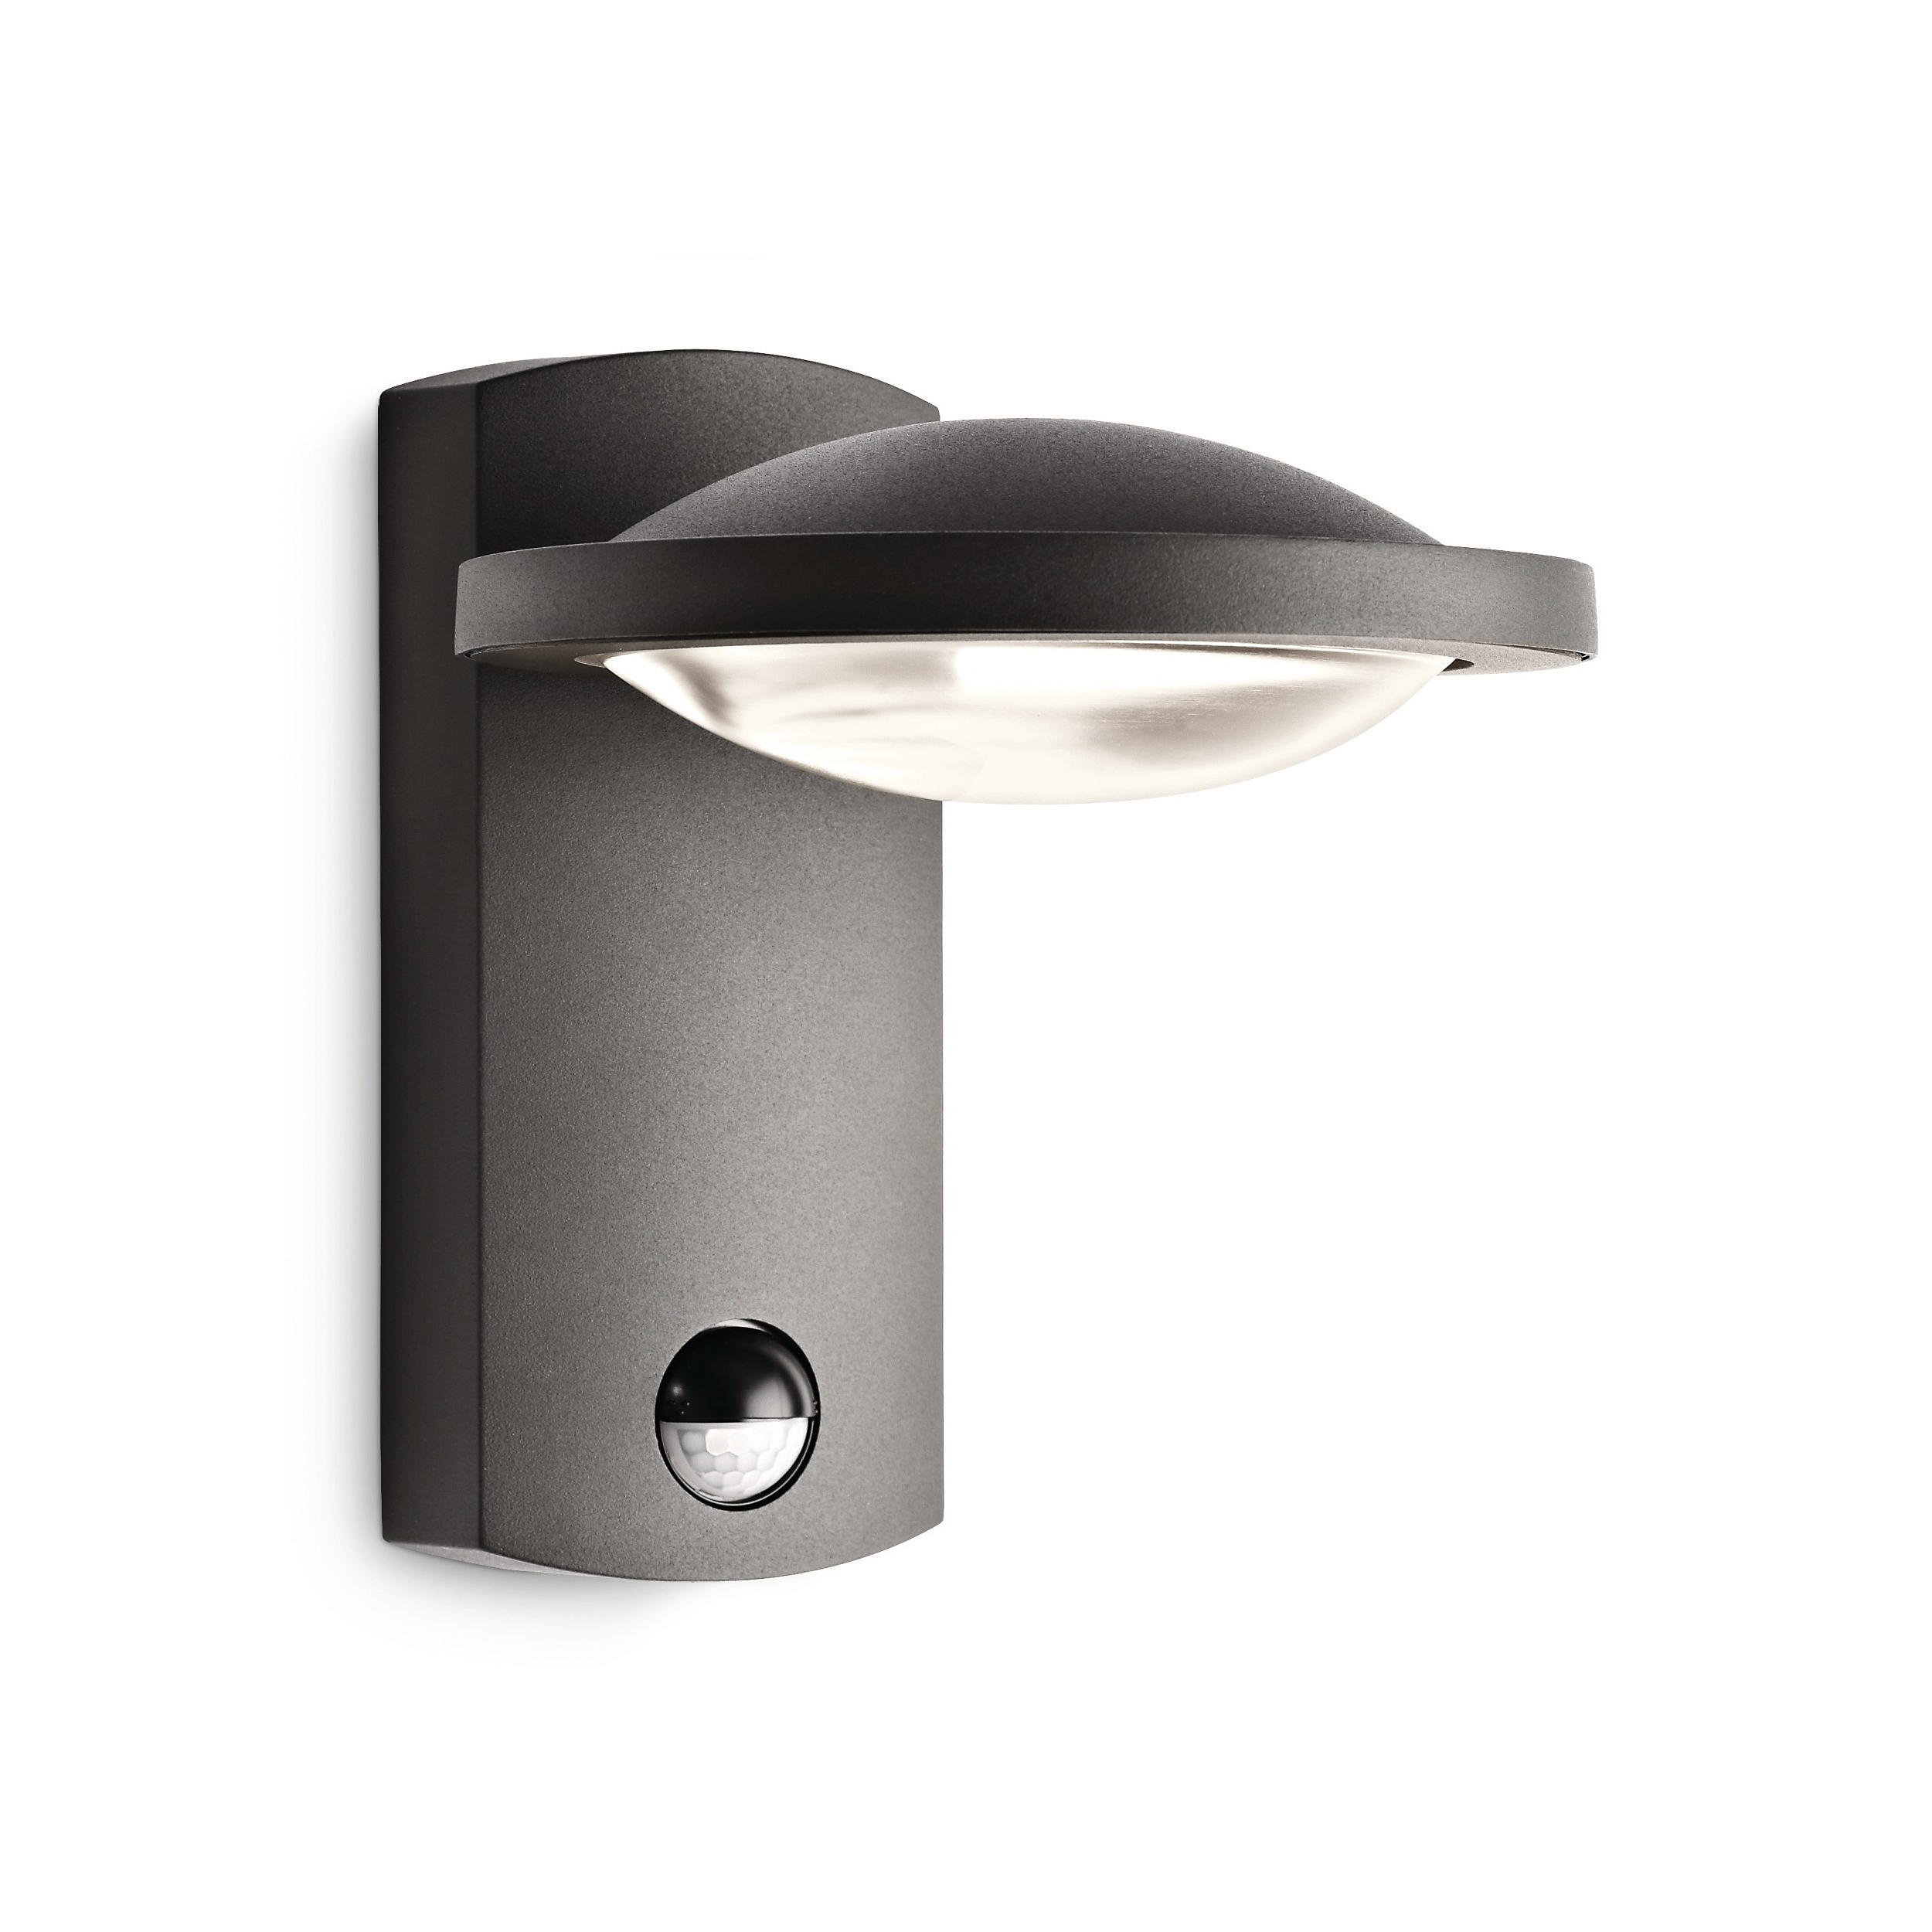 Philips ledino applique murale ext rieur moderne lampe led for Lampe exterieur electrique